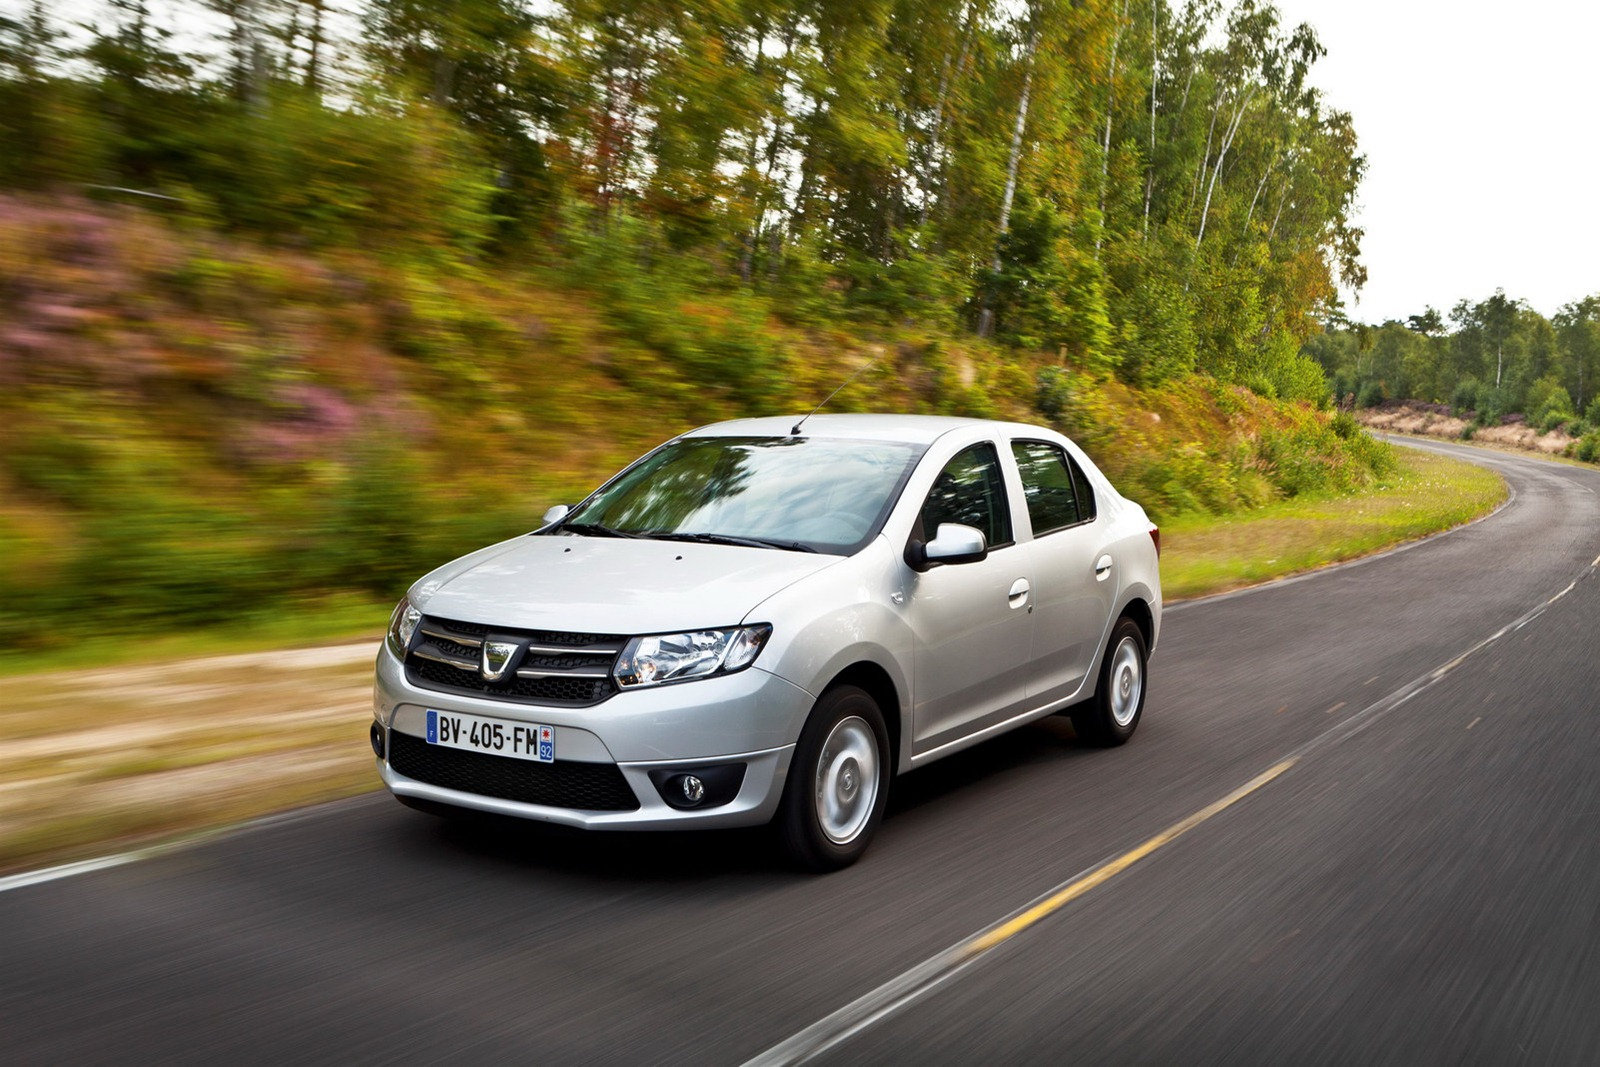 2013 dacia logan sedan ve sandero 2 hatchback duyuruldu turkeycarblog. Black Bedroom Furniture Sets. Home Design Ideas